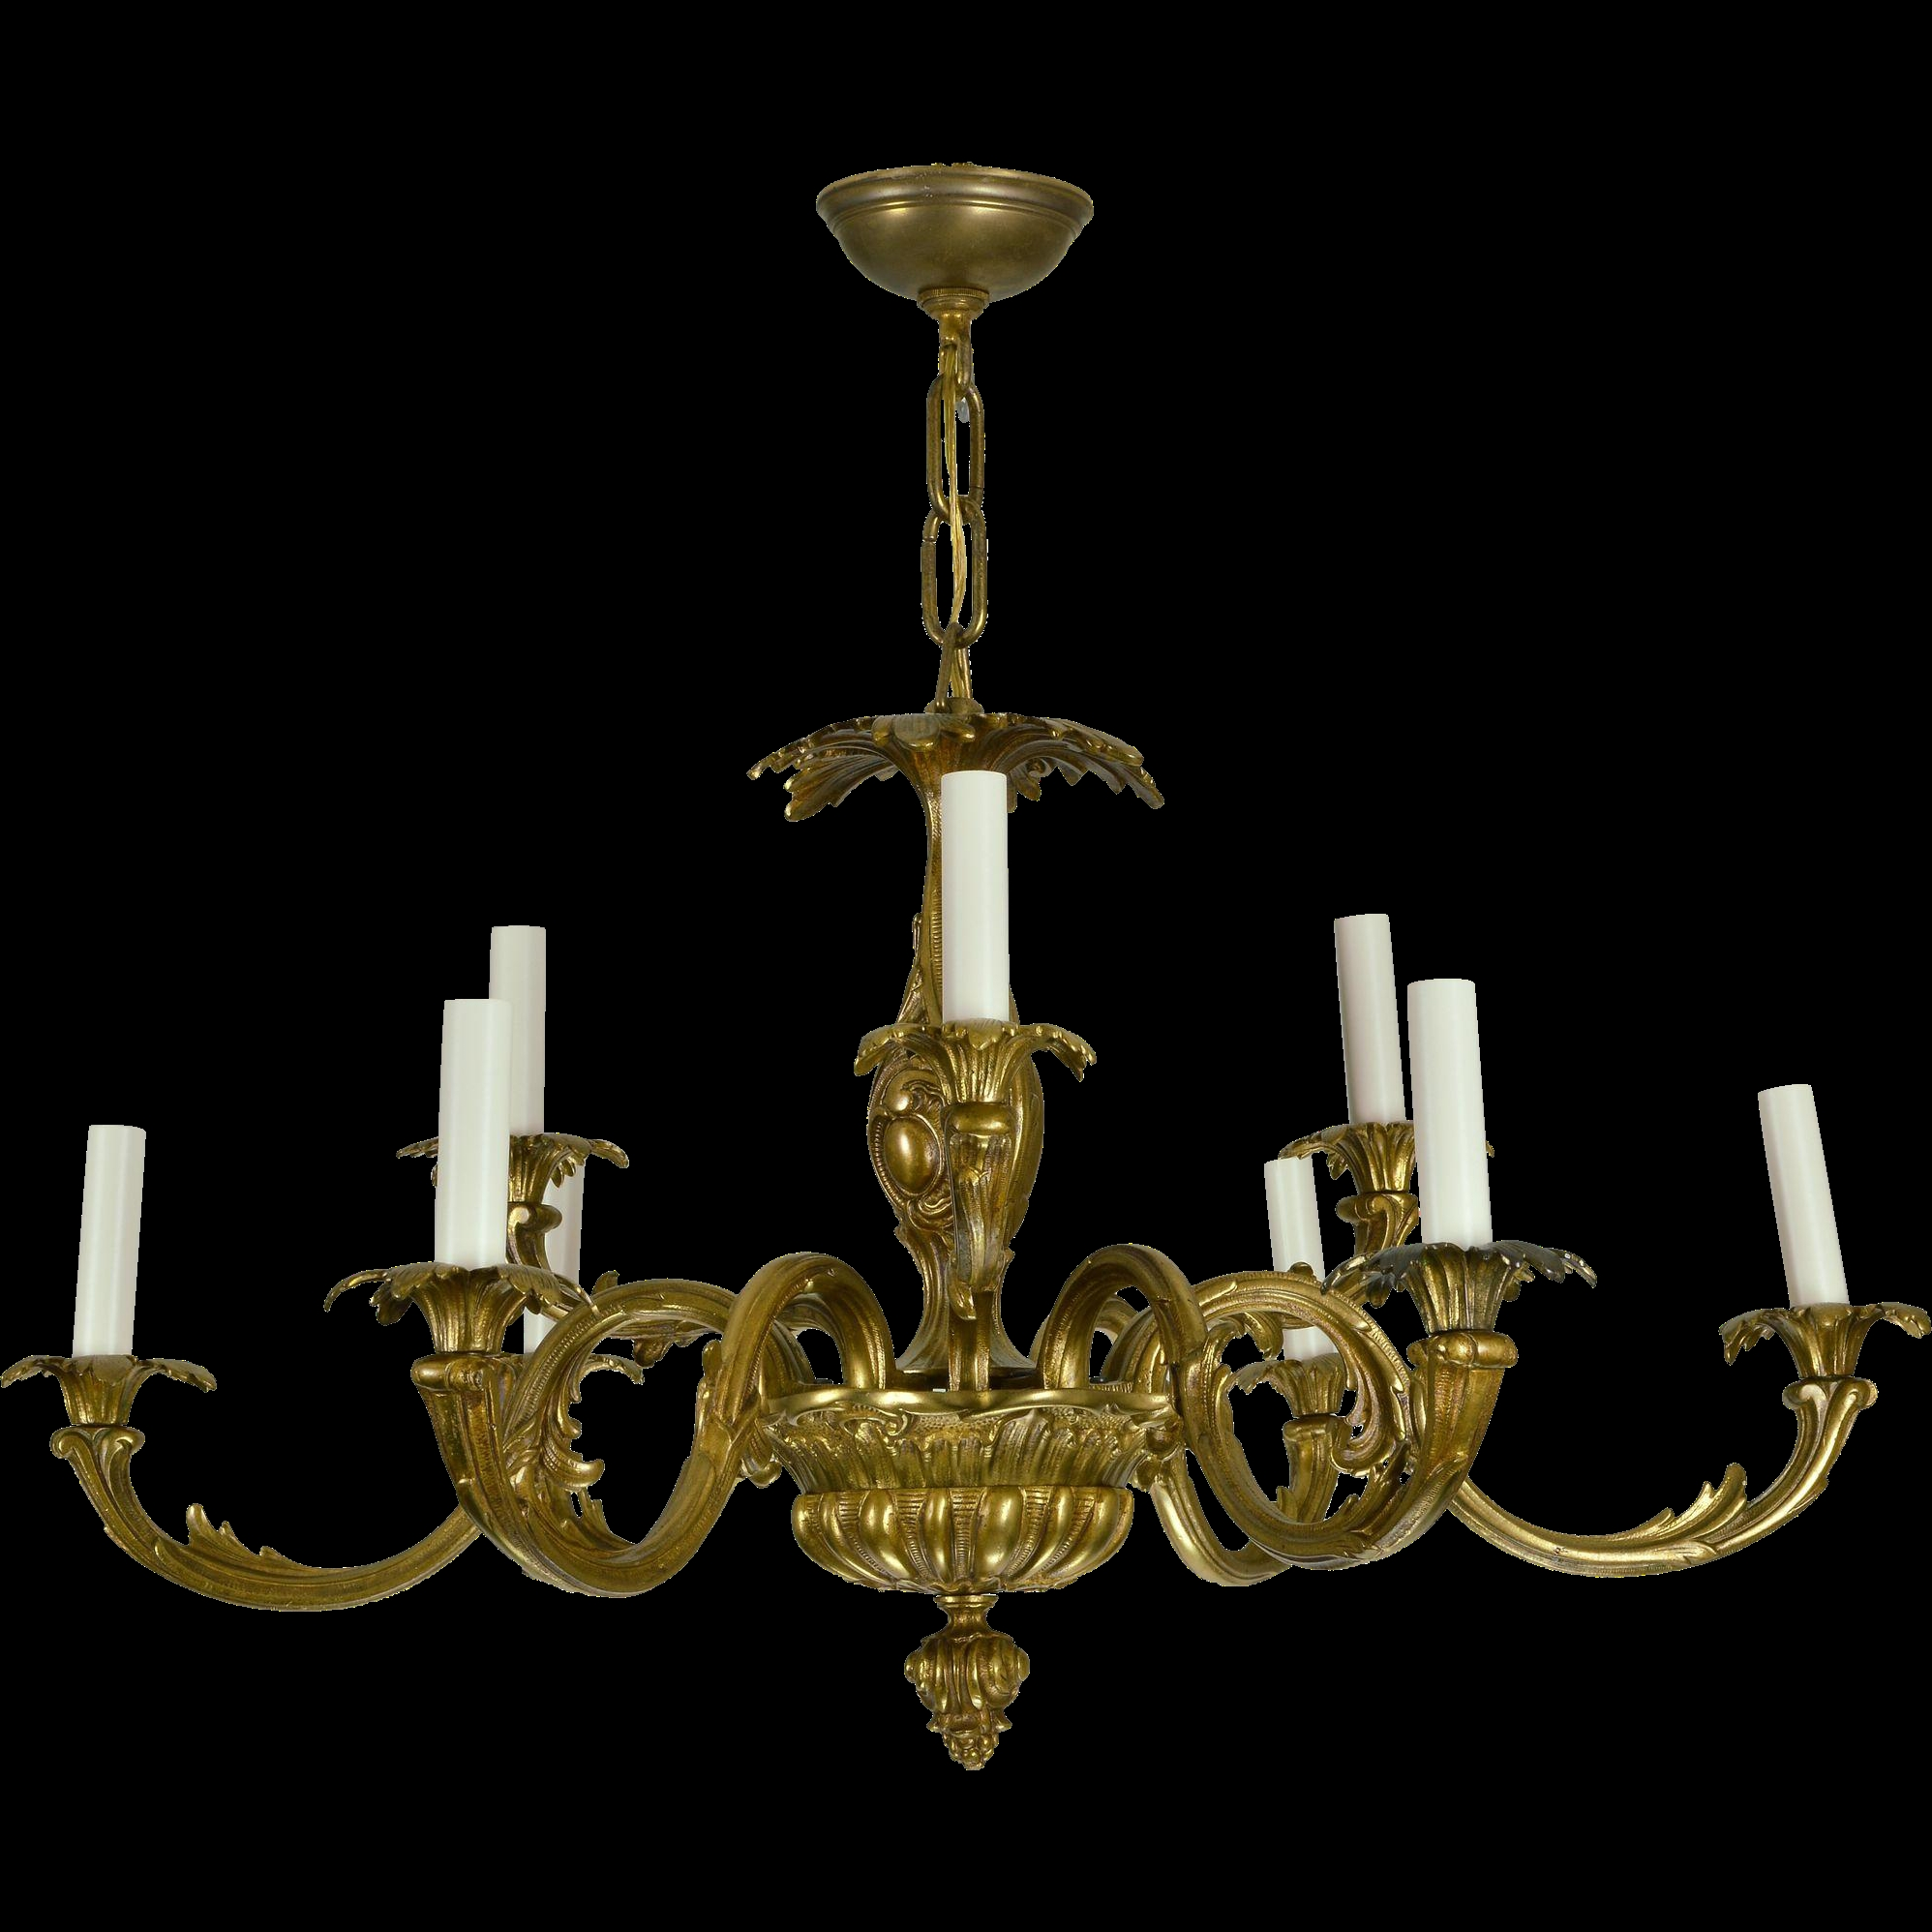 Vintage Brass French Baroque Chandelier From Tolw On Ru Lane Pertaining To Old Brass Chandelier (#11 of 12)